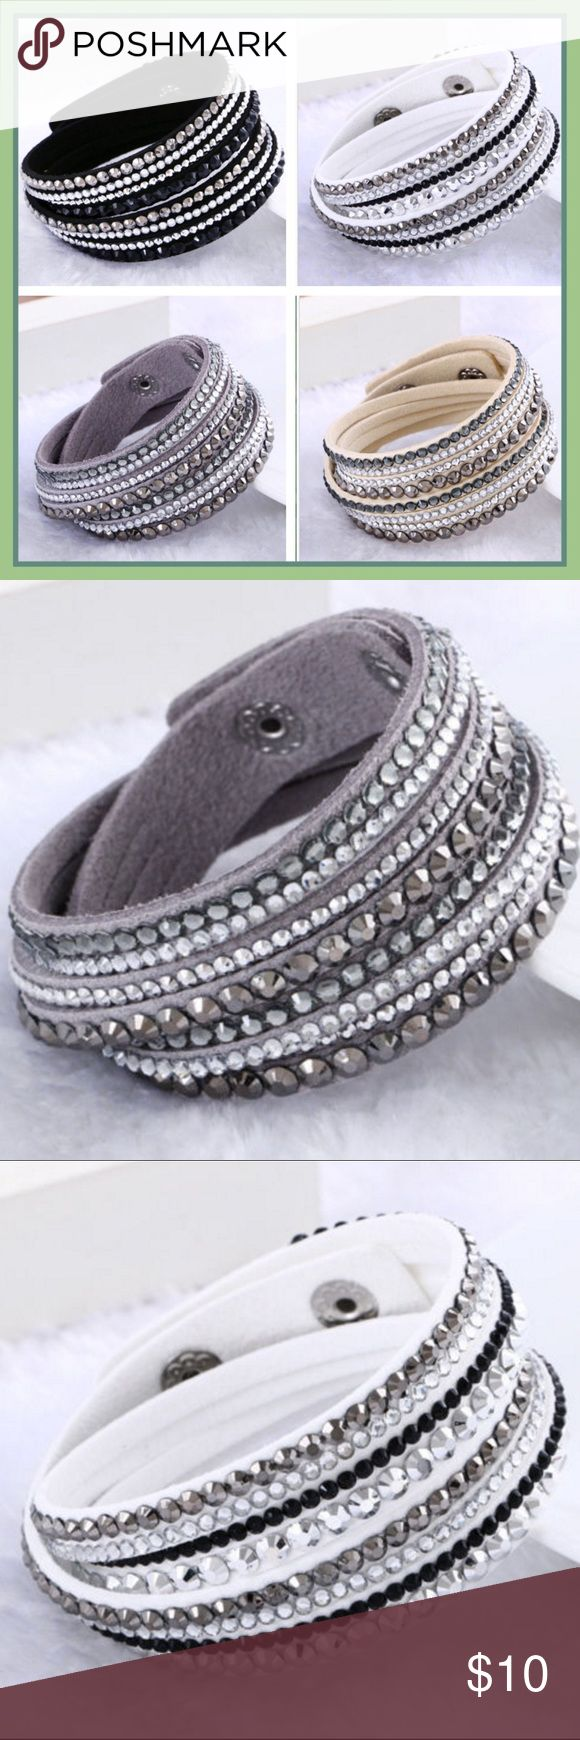 """BOGO 50% OFF- Suede Wrap Crystal Bracelet / Choker NIB. PRICE FIRM.  Suede Double Wrap Crystal Bracelet with two snaps to fit most everyone.  Approx 14.25-15"""" long, can double as a choker on most necks. (First snap at 14.25""""; second snap at 15"""") Comes in 4 colors -- buy one, get one for 50% off!  (I will create a listing for you - this means 2 for $15 instead of 2 for $20).  Plus a free 💄beauty sample 💄with purchase.  But: 🚫NO TRADES🚫, Thanks. Jewelry Bracelets"""